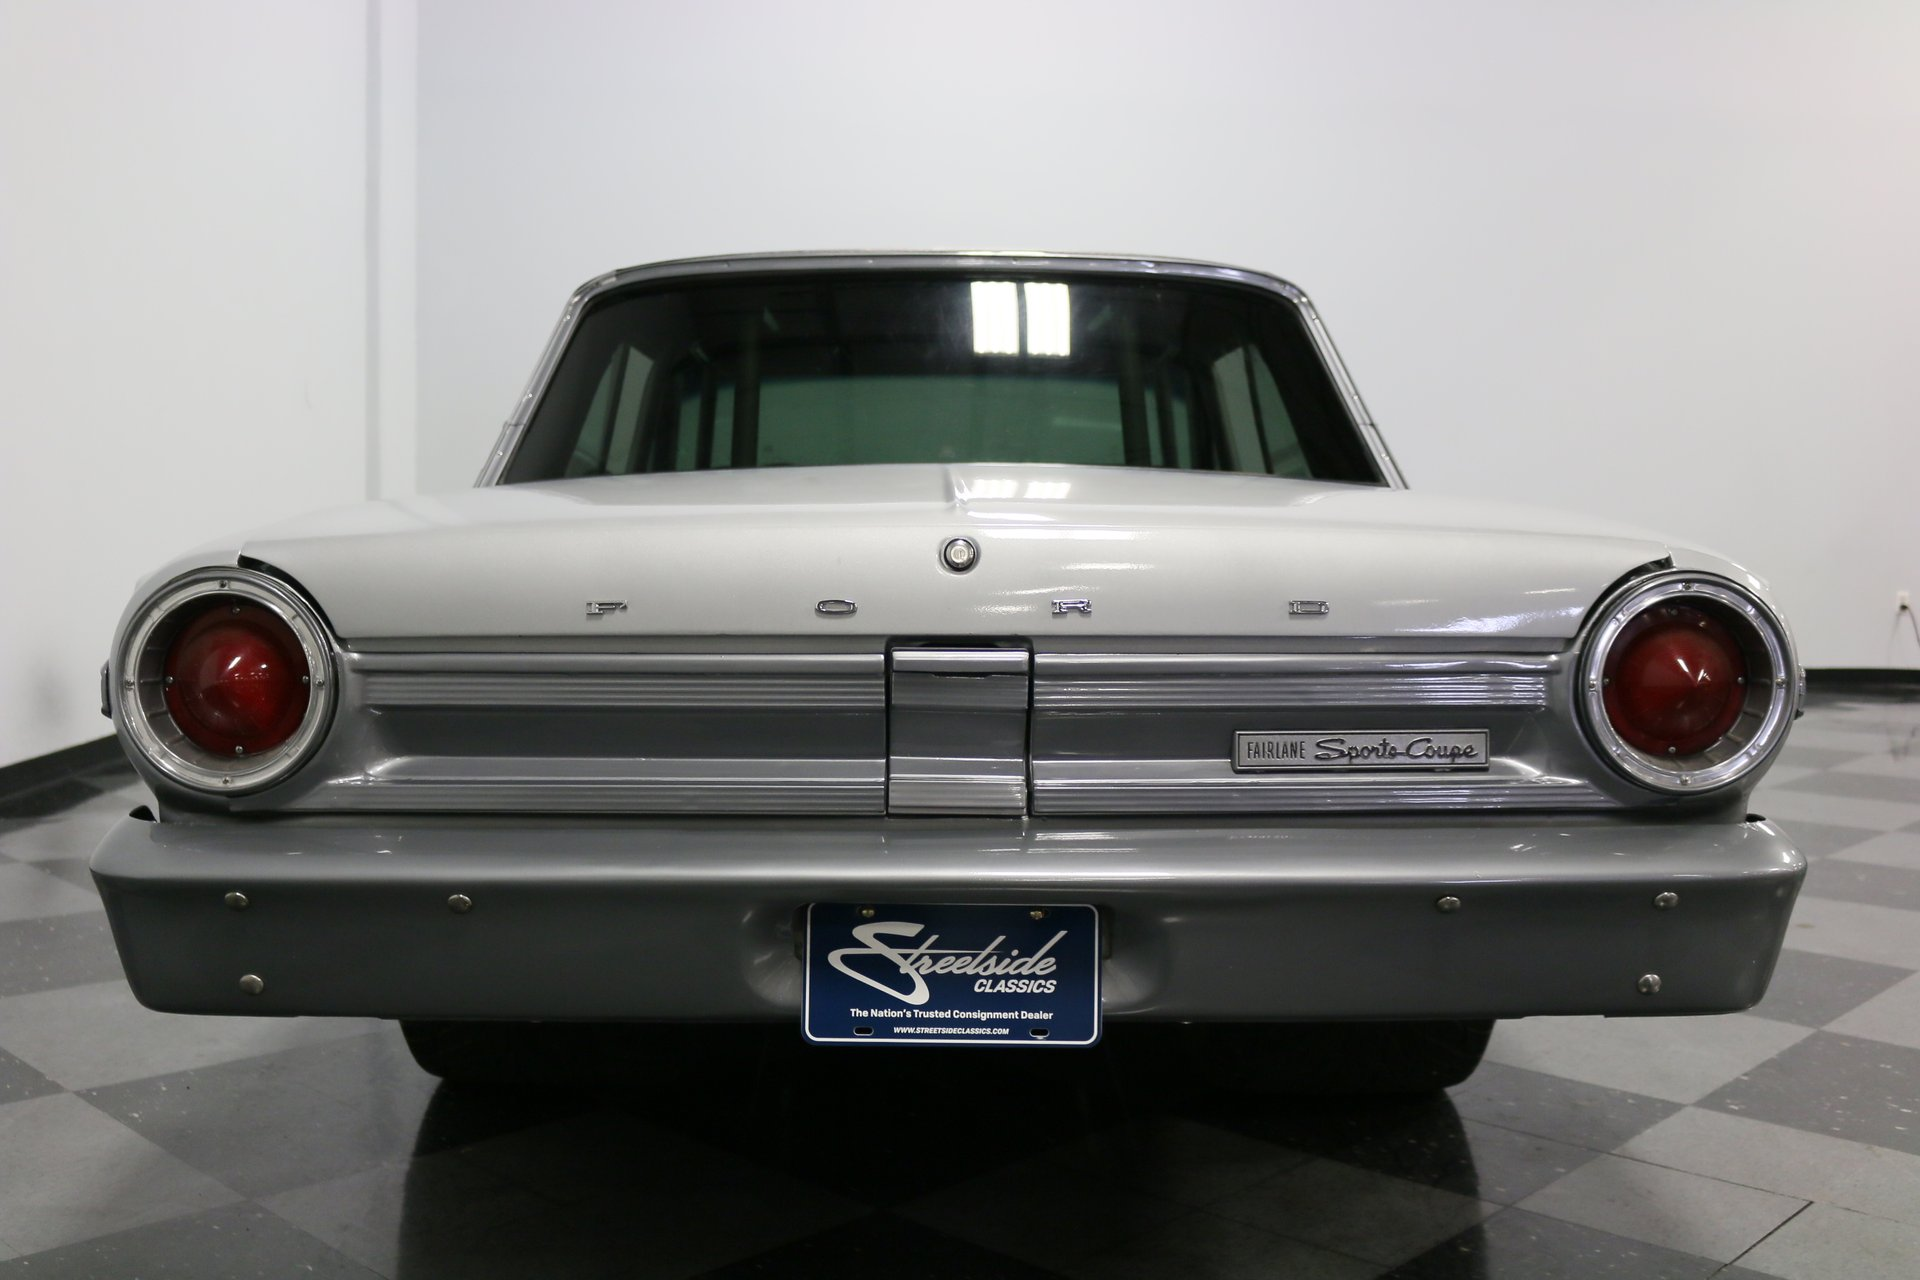 1964 Ford Fairlane 500 Pro Street for sale #117698 | MCG